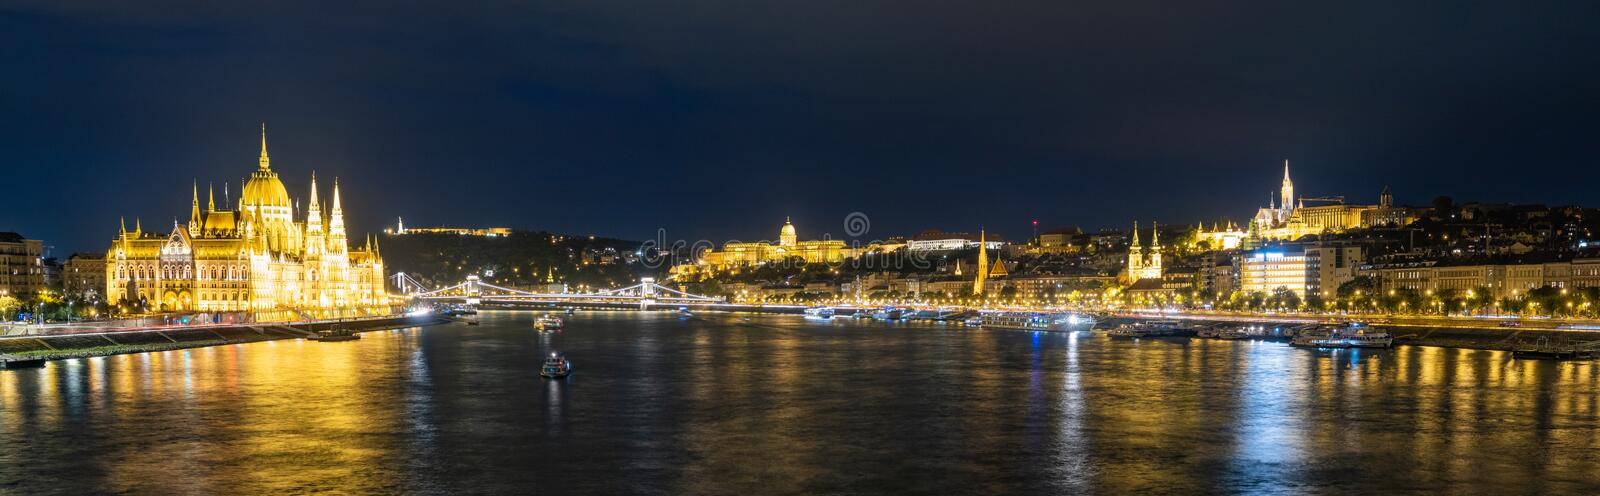 Budapest night panorama royalty free stock image